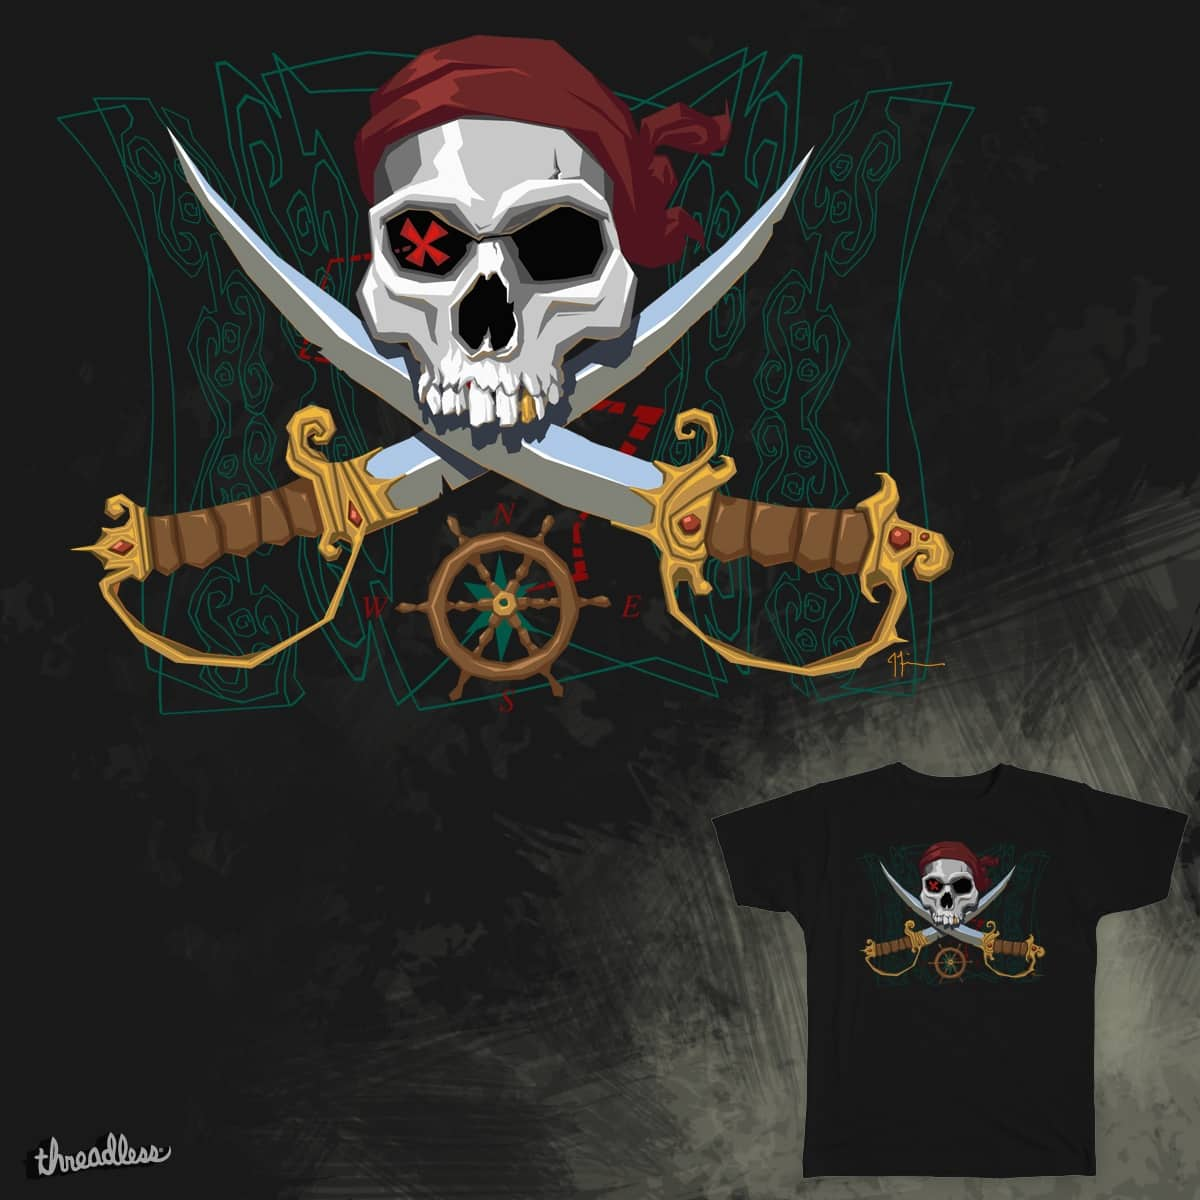 aaarrrrr fun times by jfinnart on Threadless